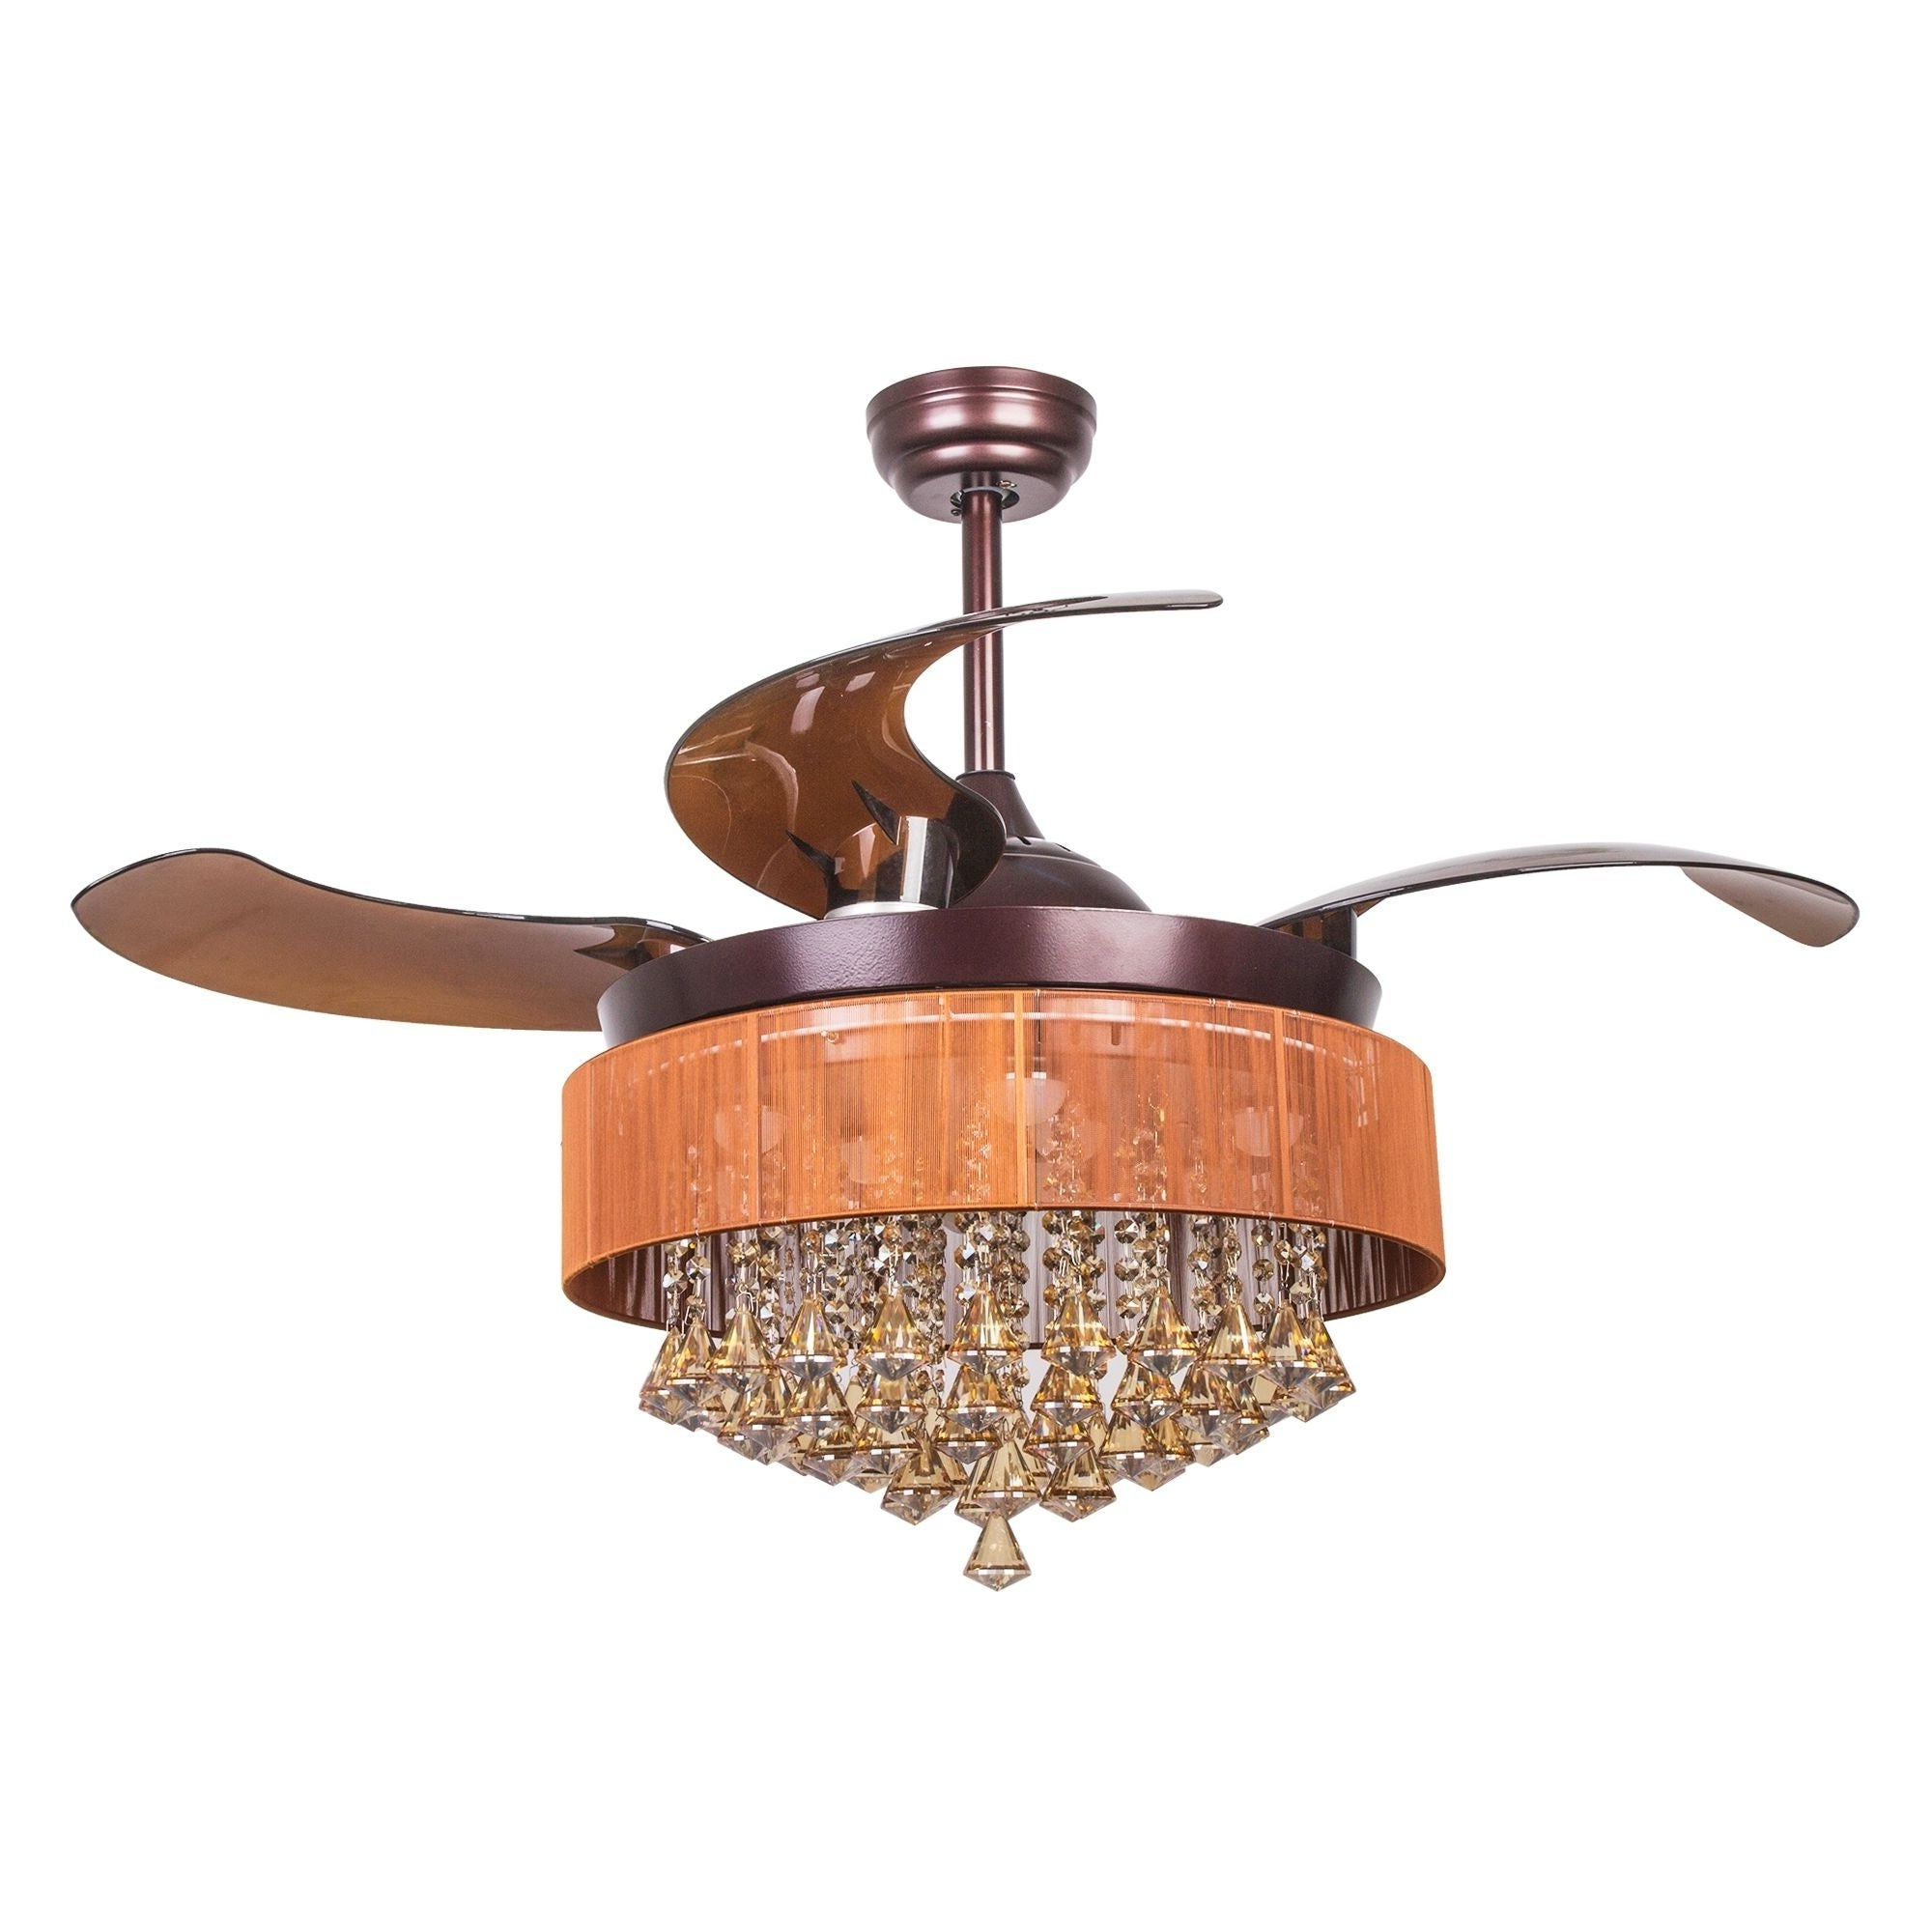 Trendy Napoli 5 Blade Led Ceiling Fans Regarding Modern Crystal Led Ceiling Fan With Foldable Blades, Oil Rubbed Bronze (View 18 of 20)